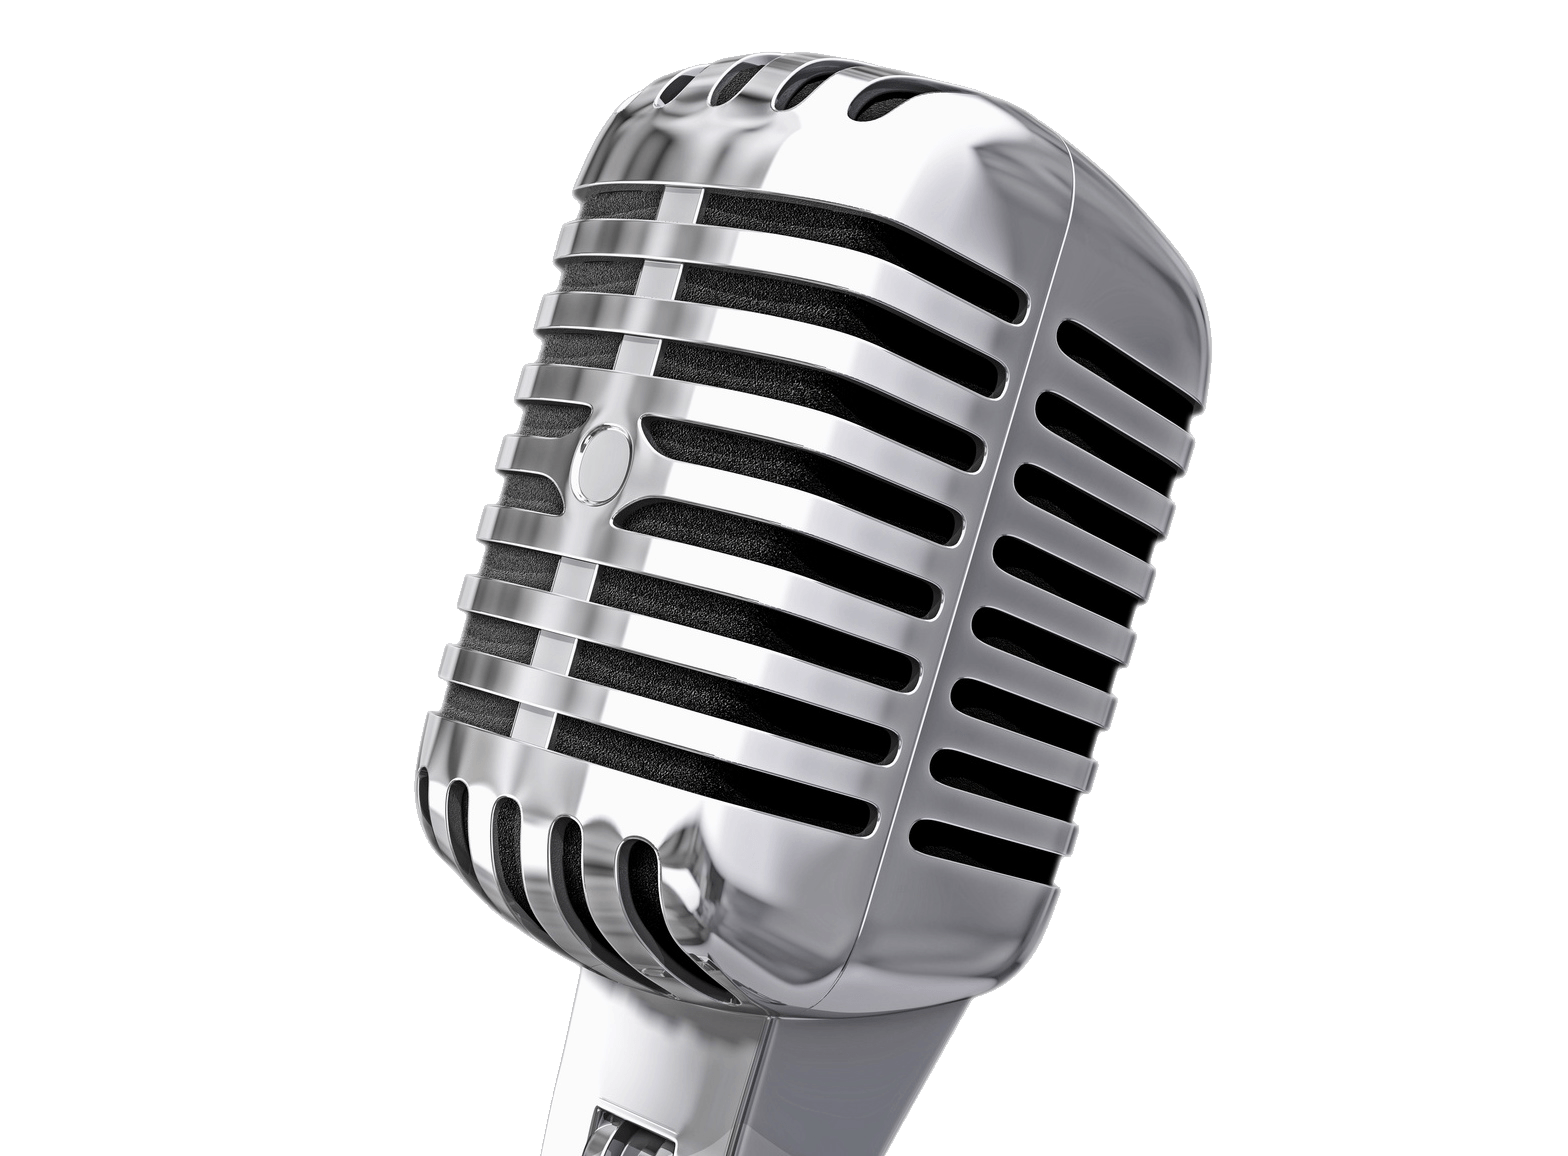 Microphone Png image #20004